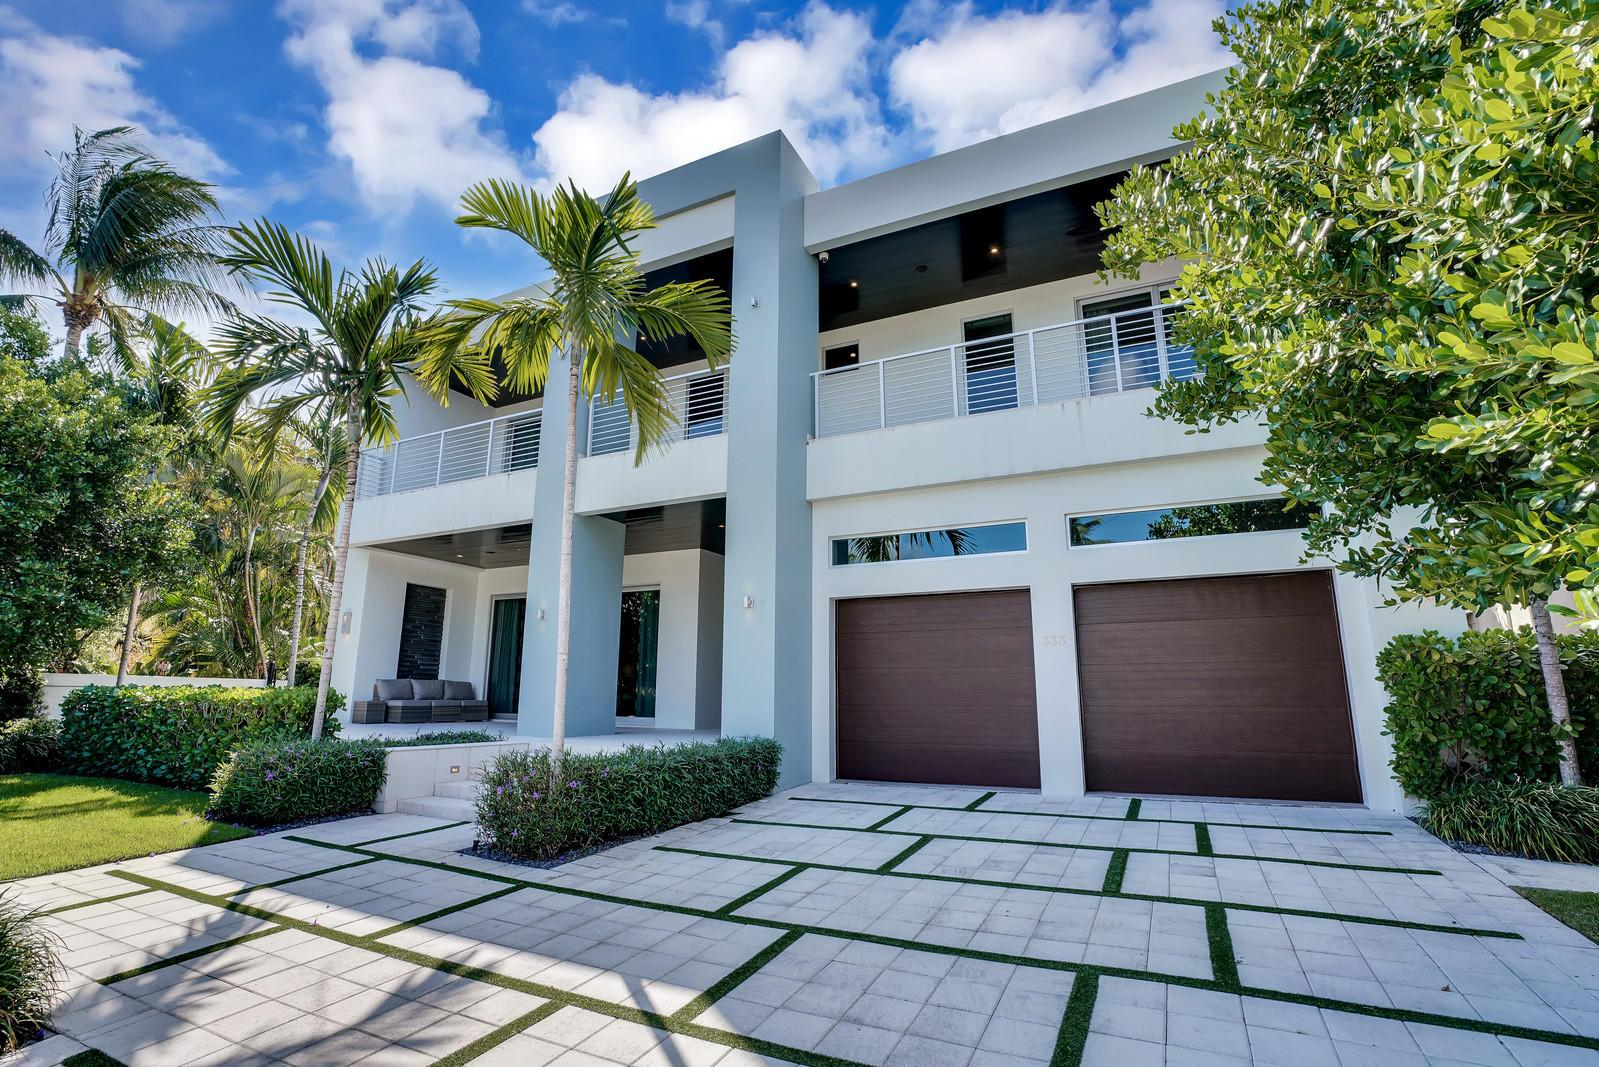 Tips to follow to buy a house in Florida